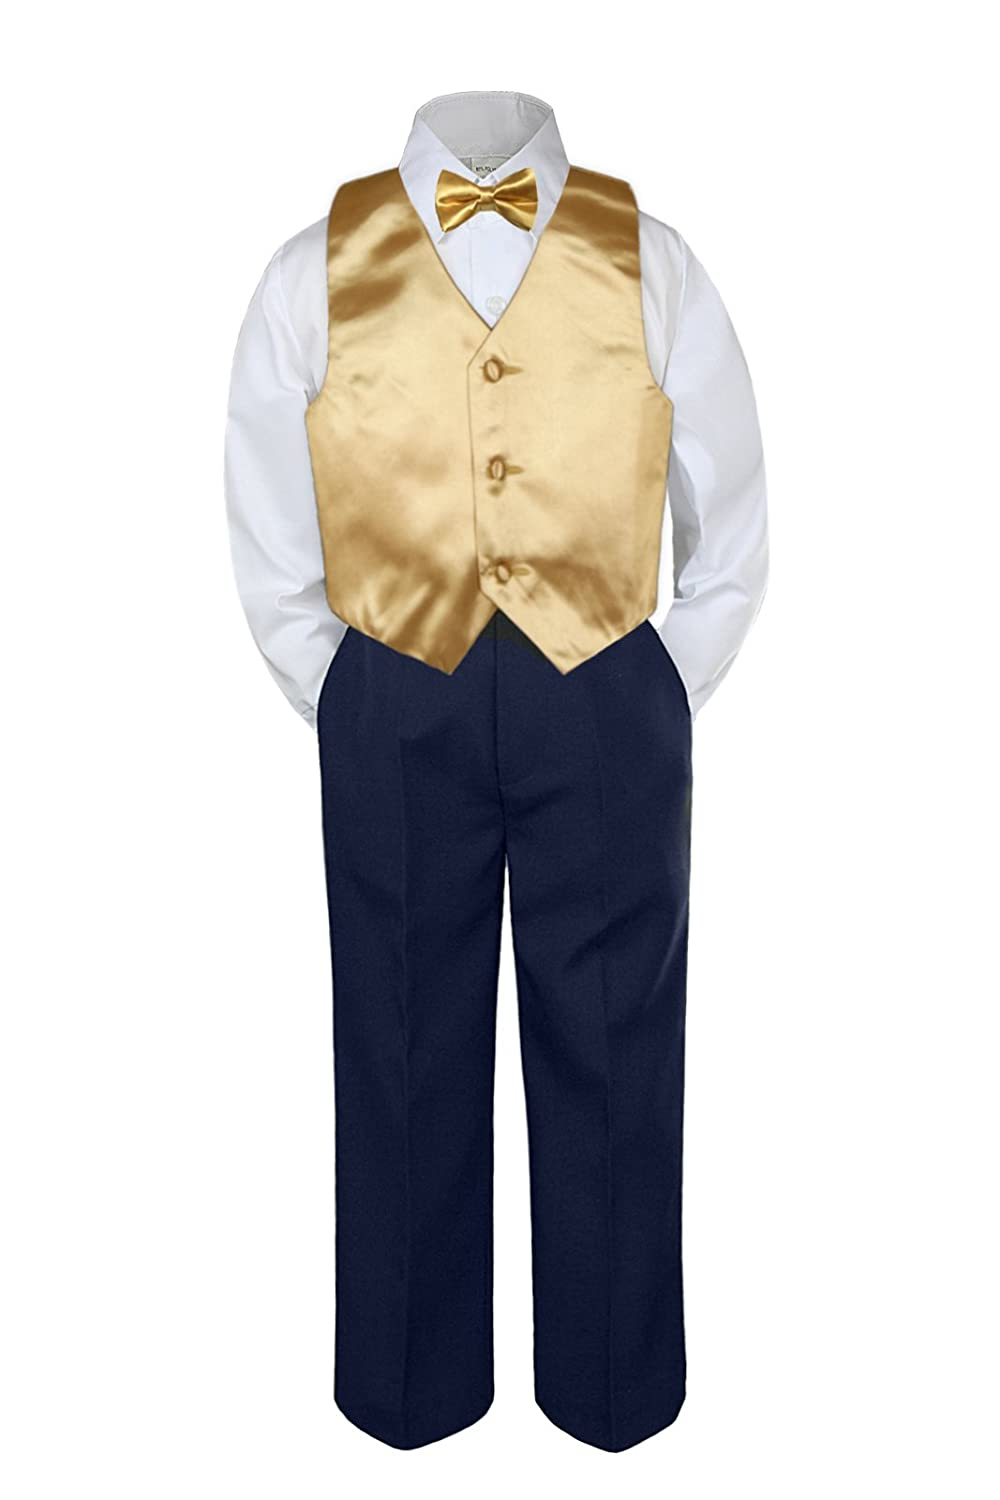 Leadertux 3pc Formal Baby Toddler Boys Satin White Necktie White Pants Suits S-7 4T